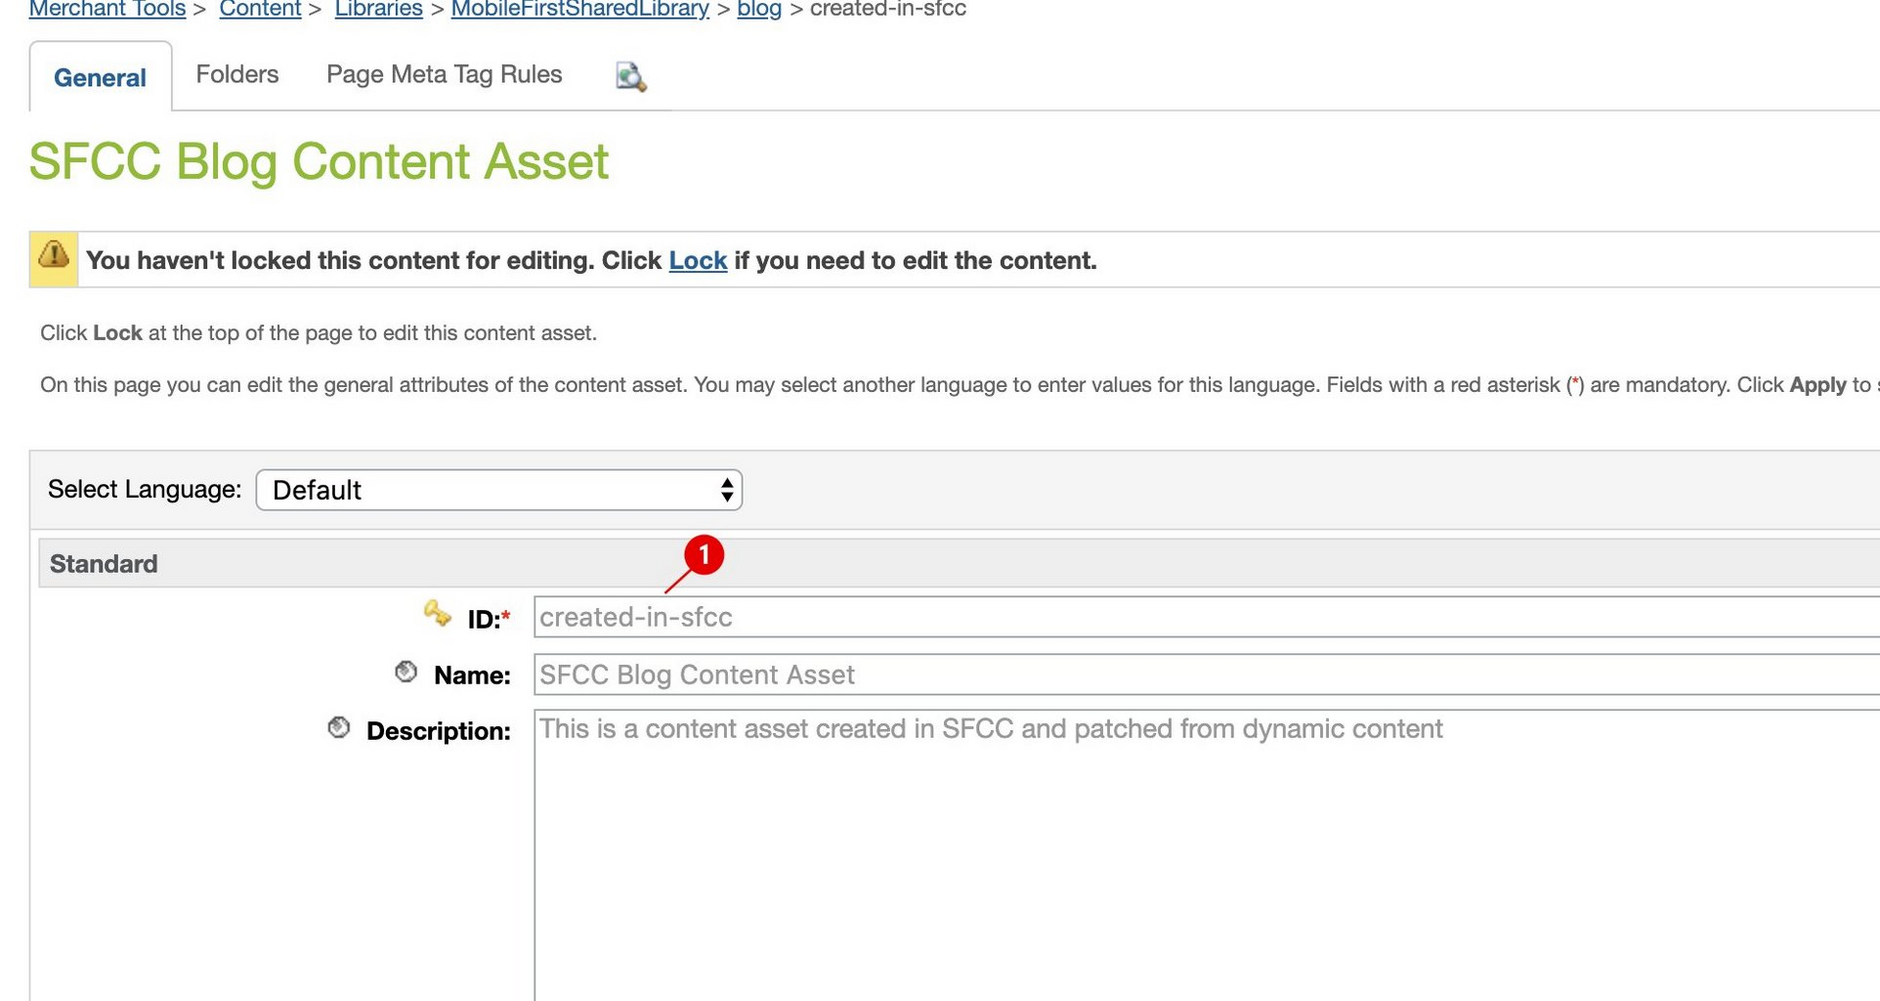 A content asset created in SFCC Business Manager